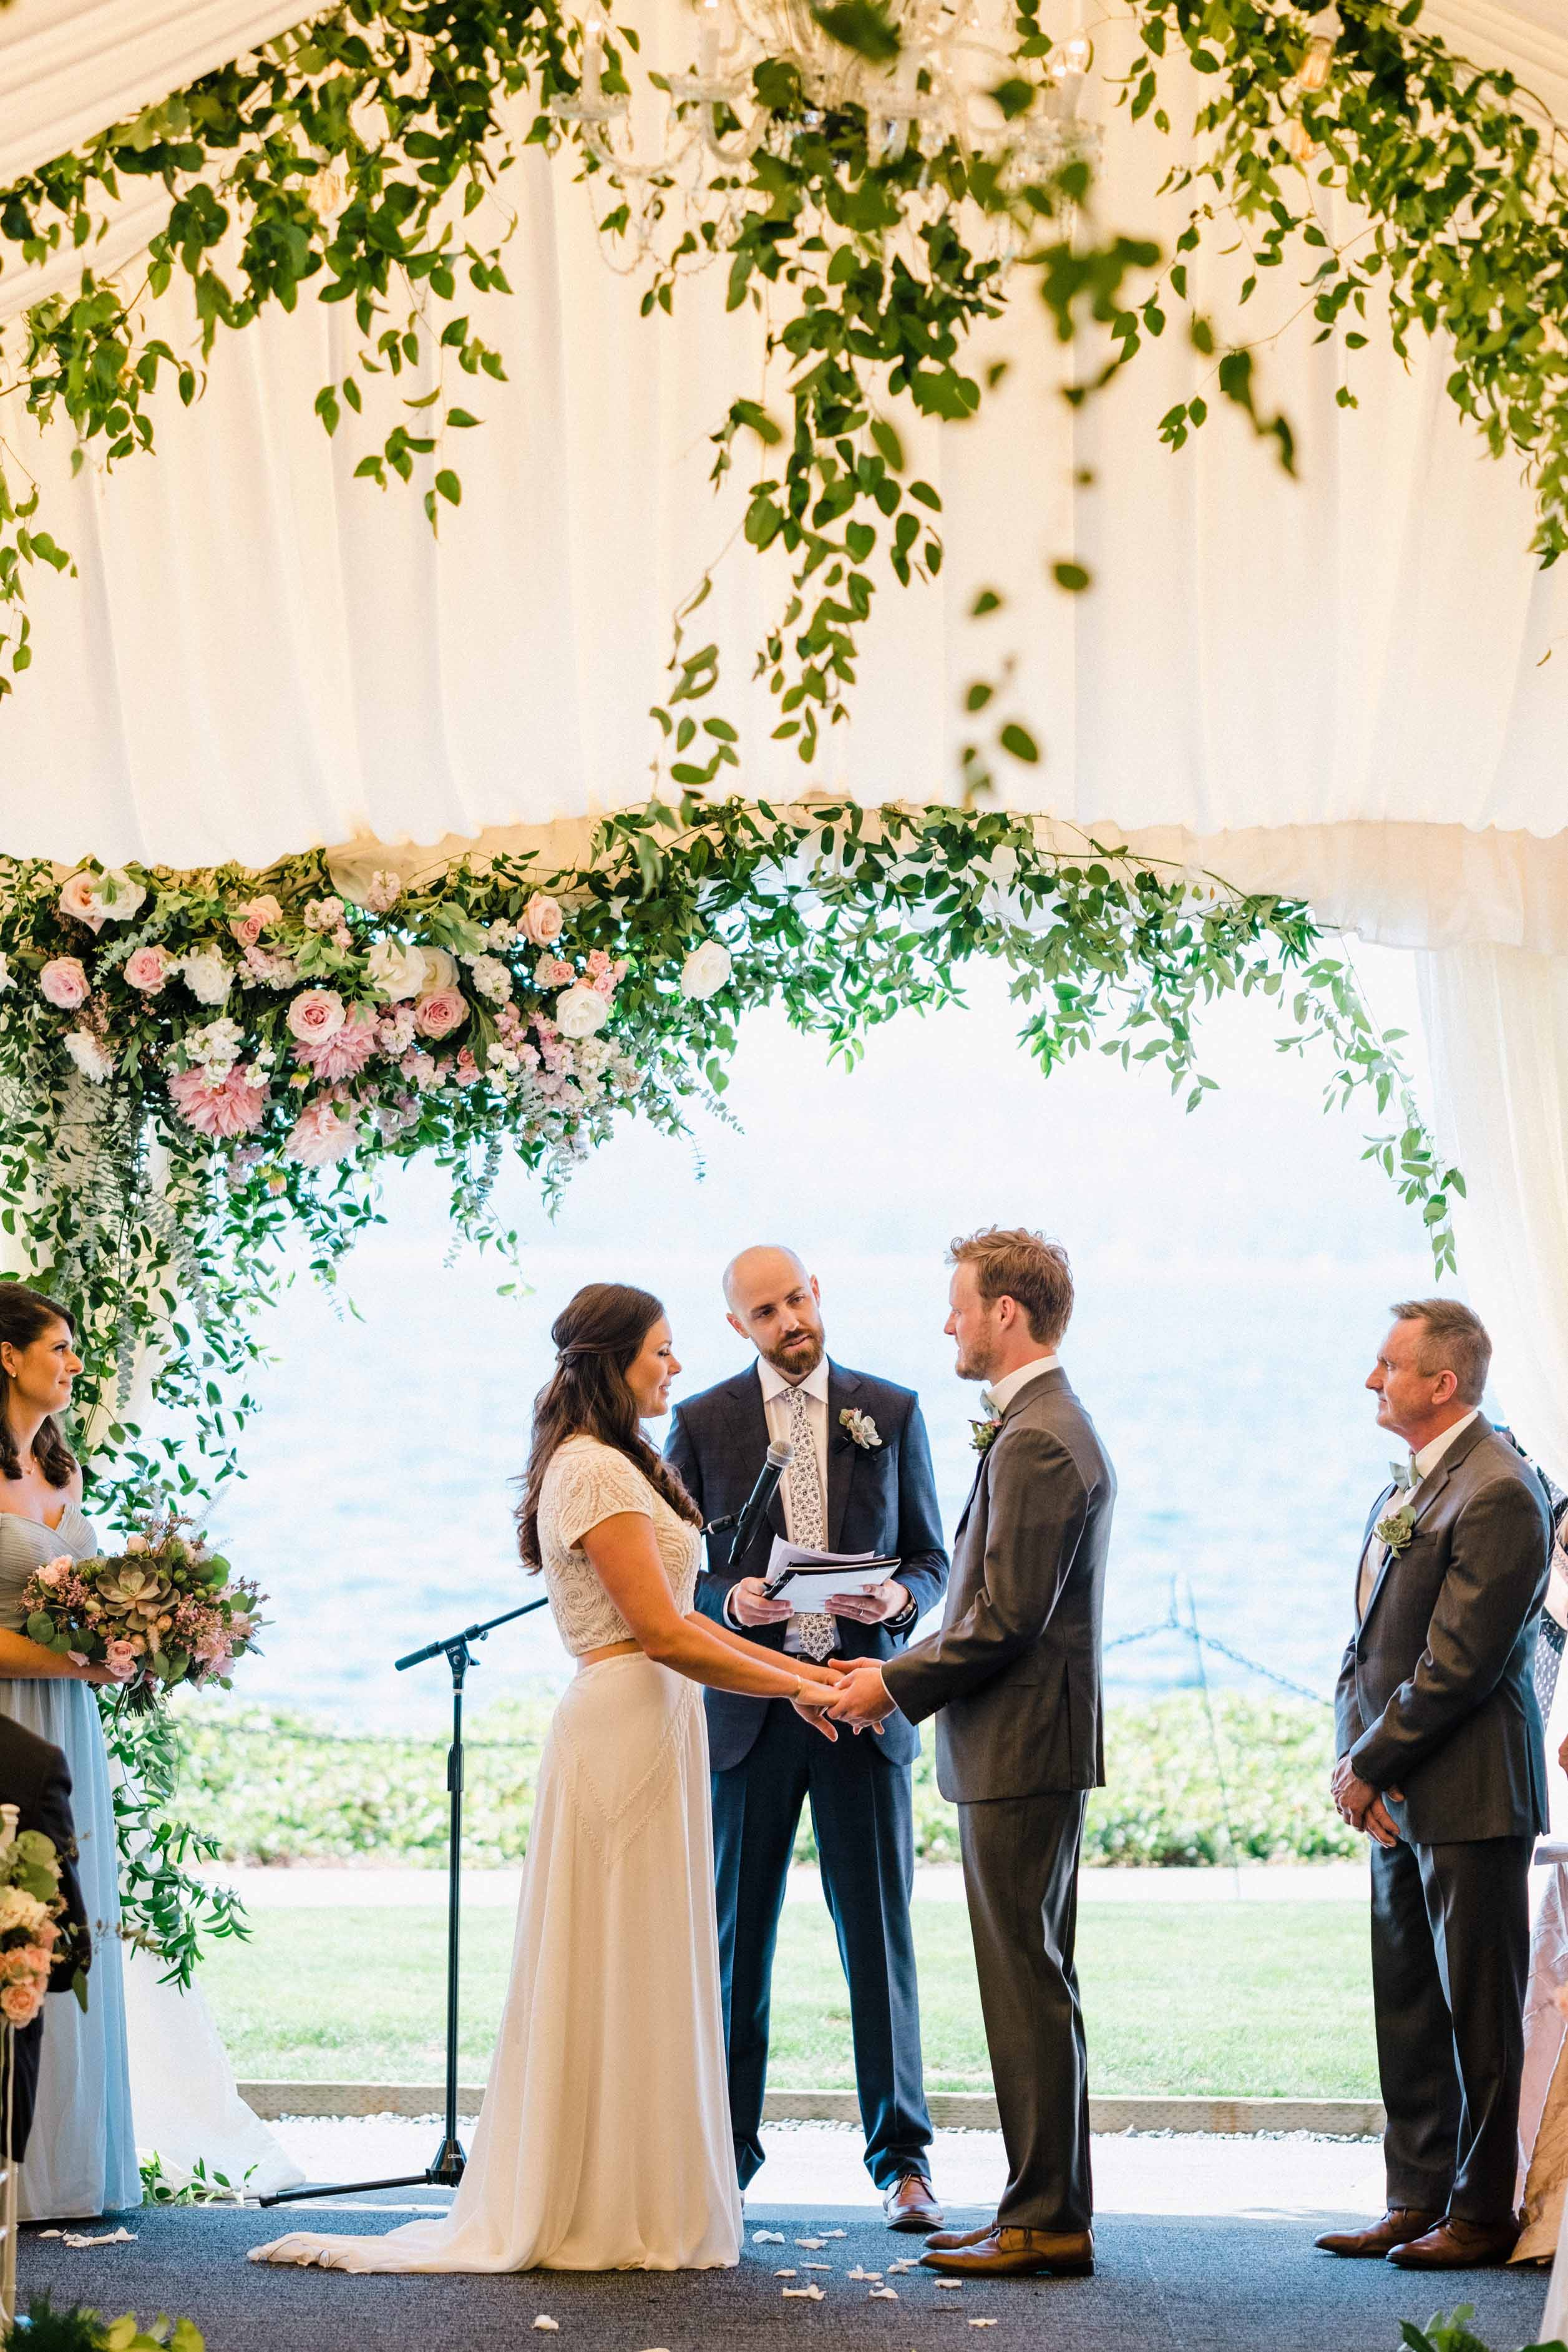 Couple during their wedding ceremony - Woodmark Hotel Wedding by Flora Nova Design Seattle